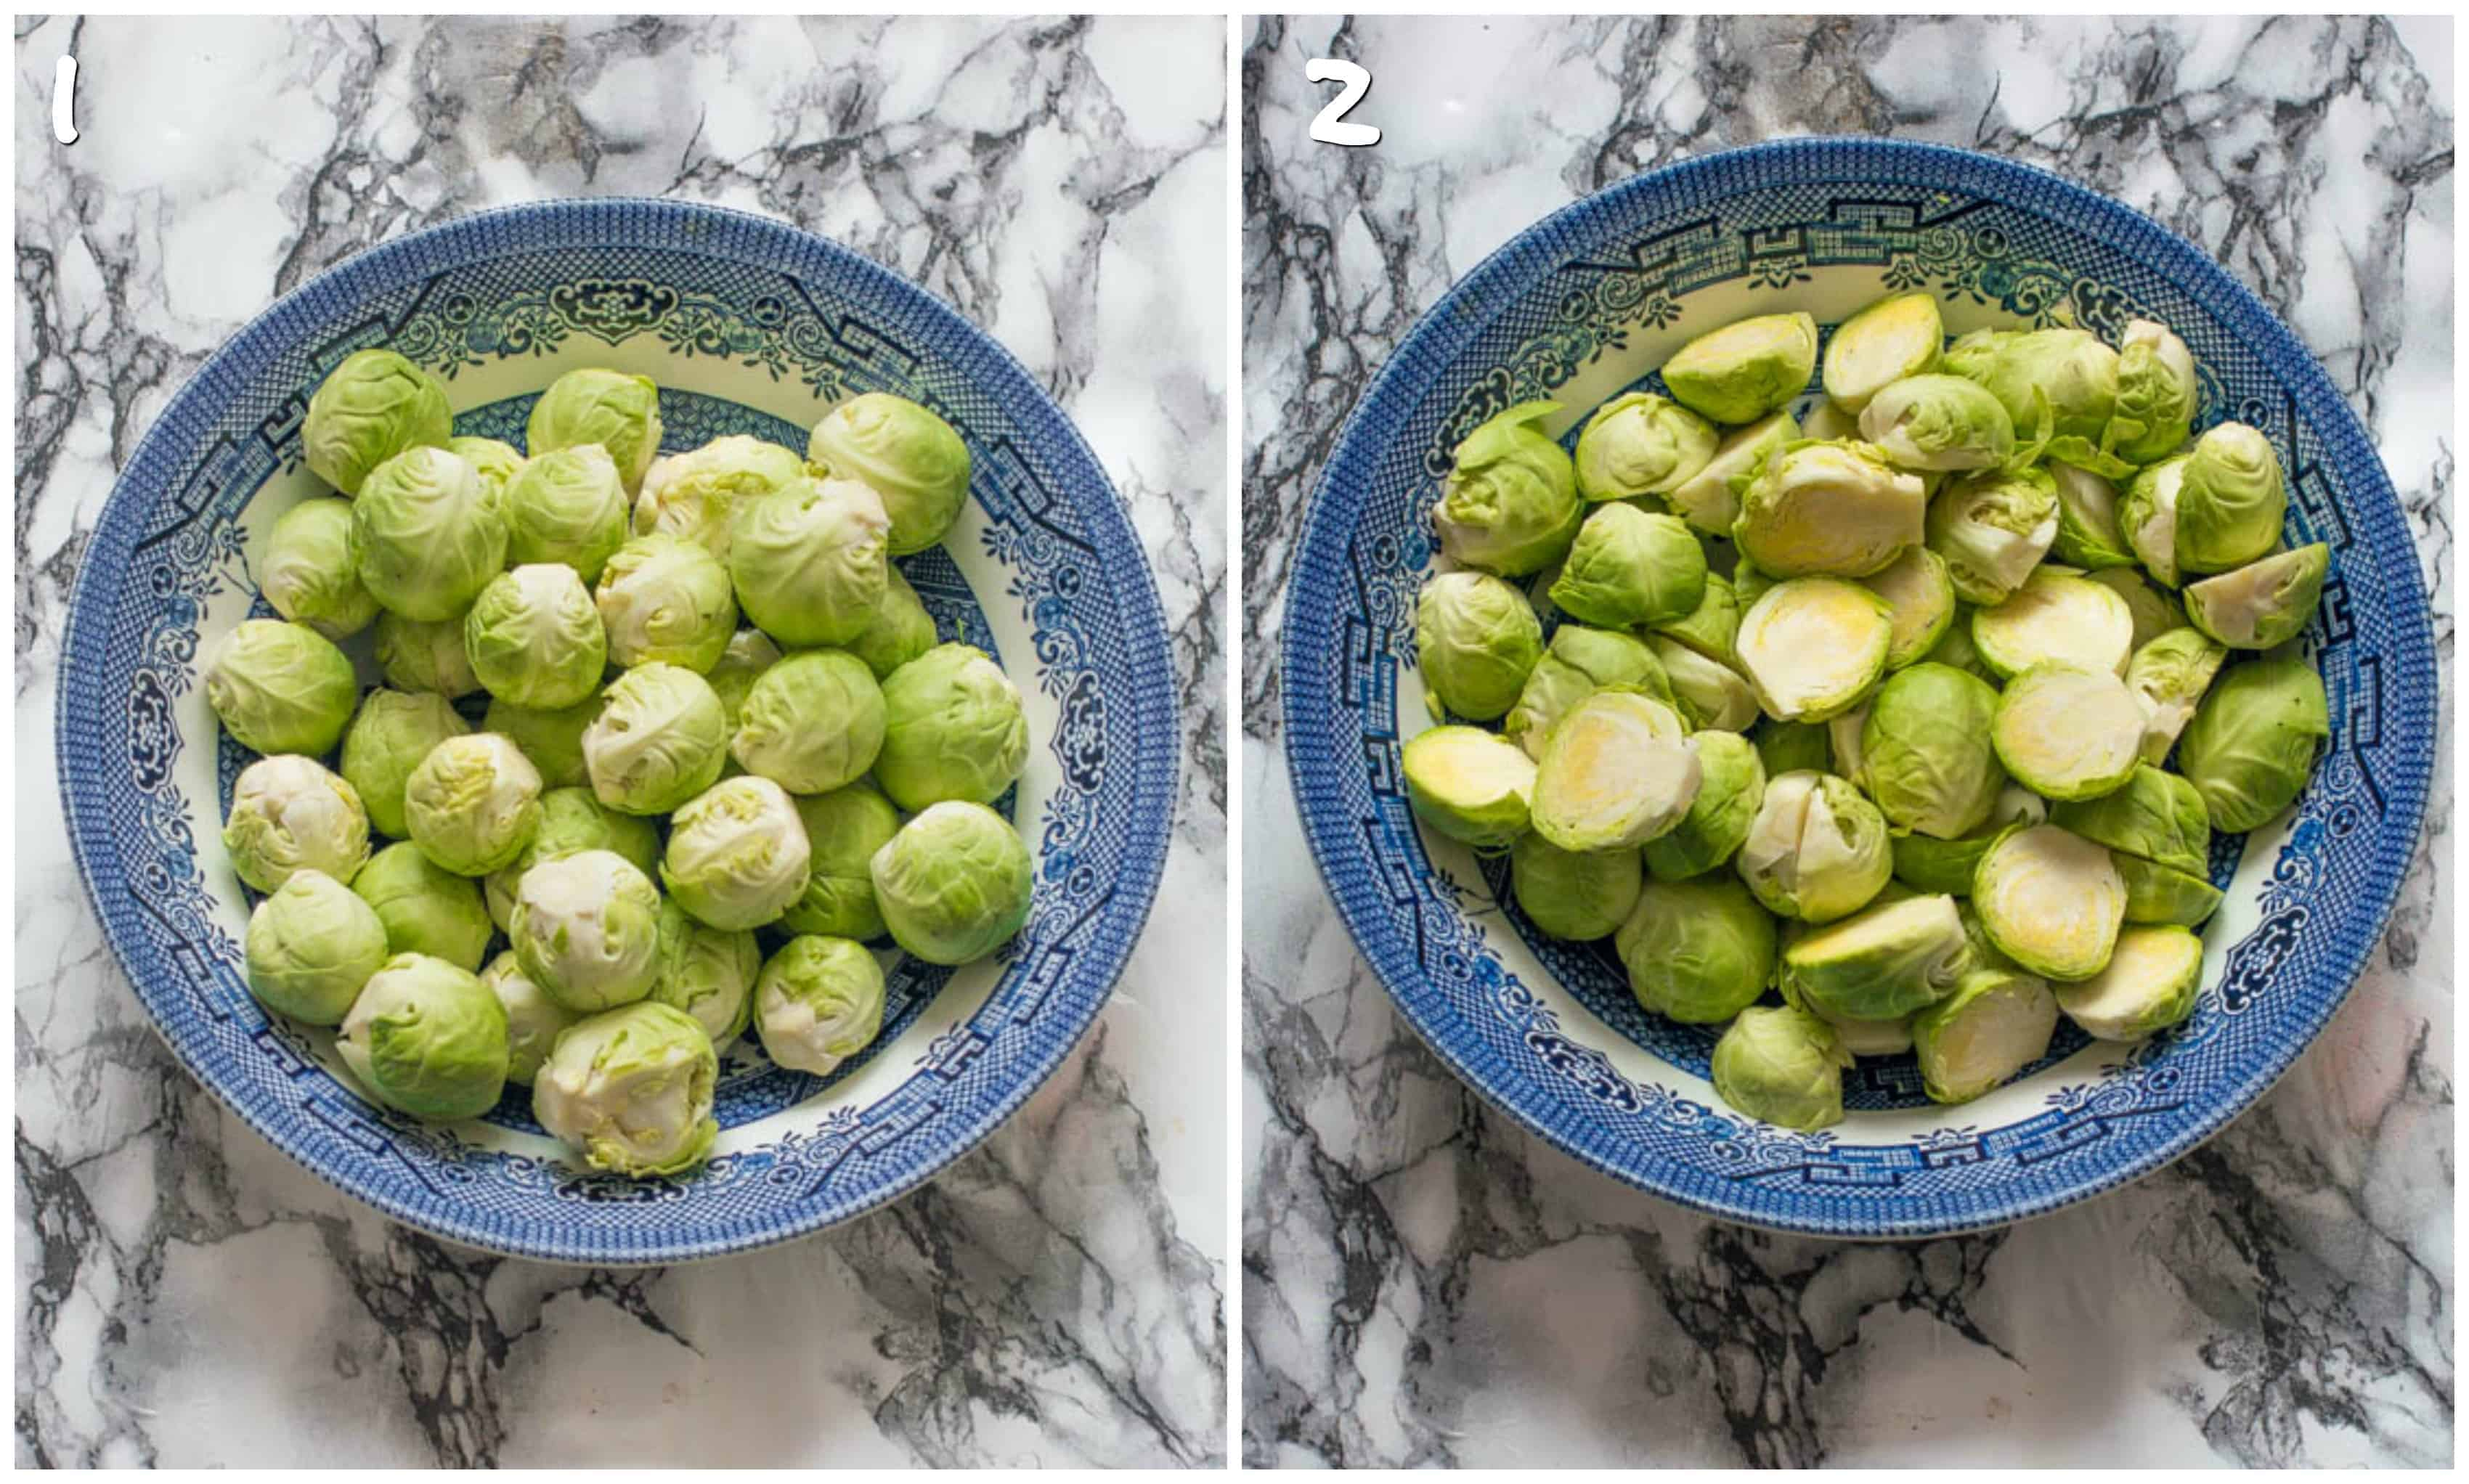 steps 1-2 cutting the brussel sprouts